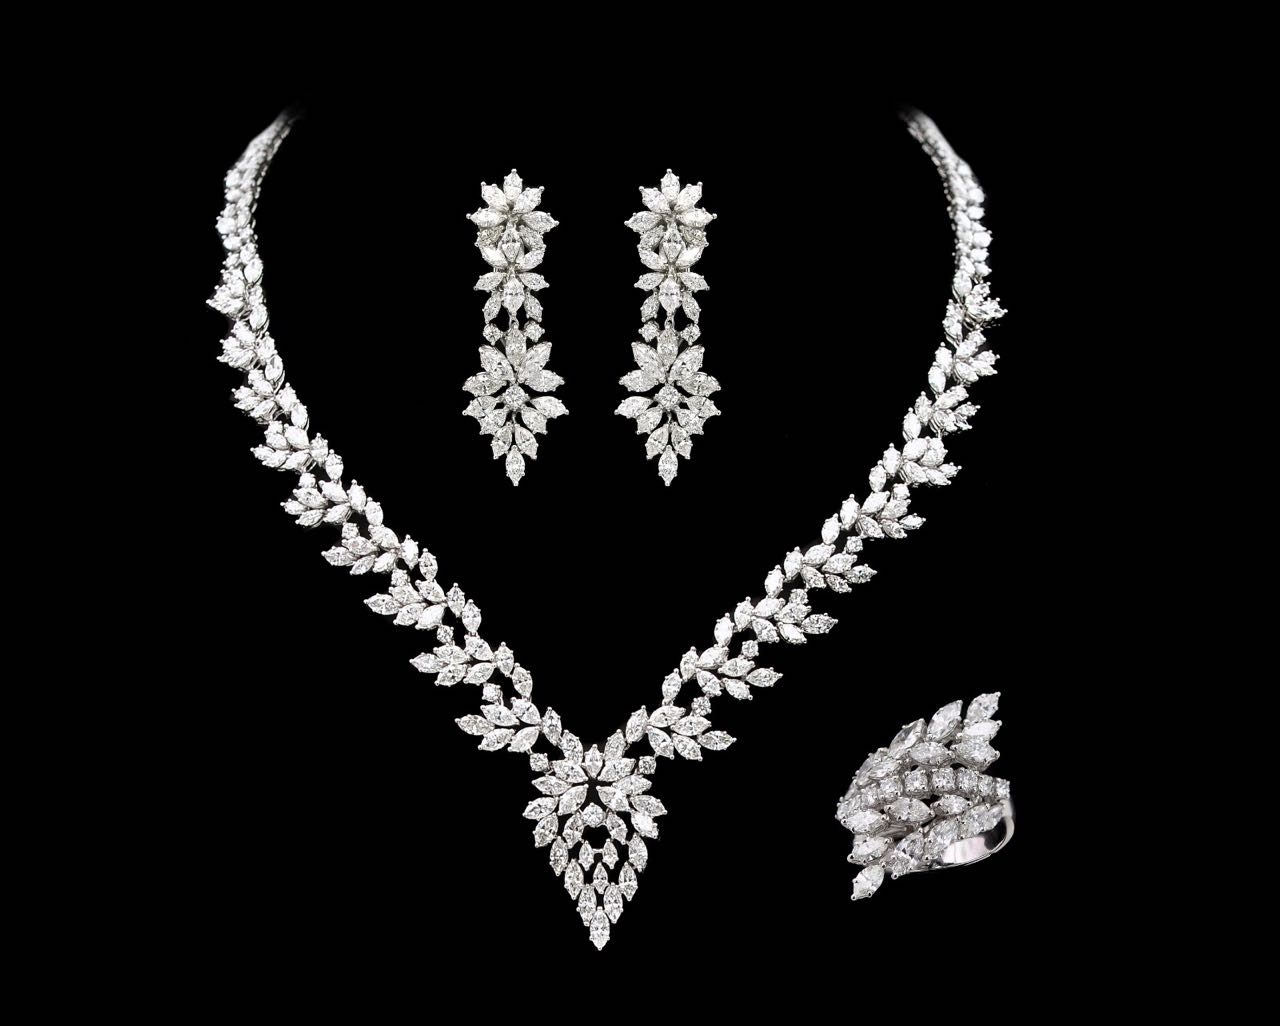 Diamond earring, necklace and ring set